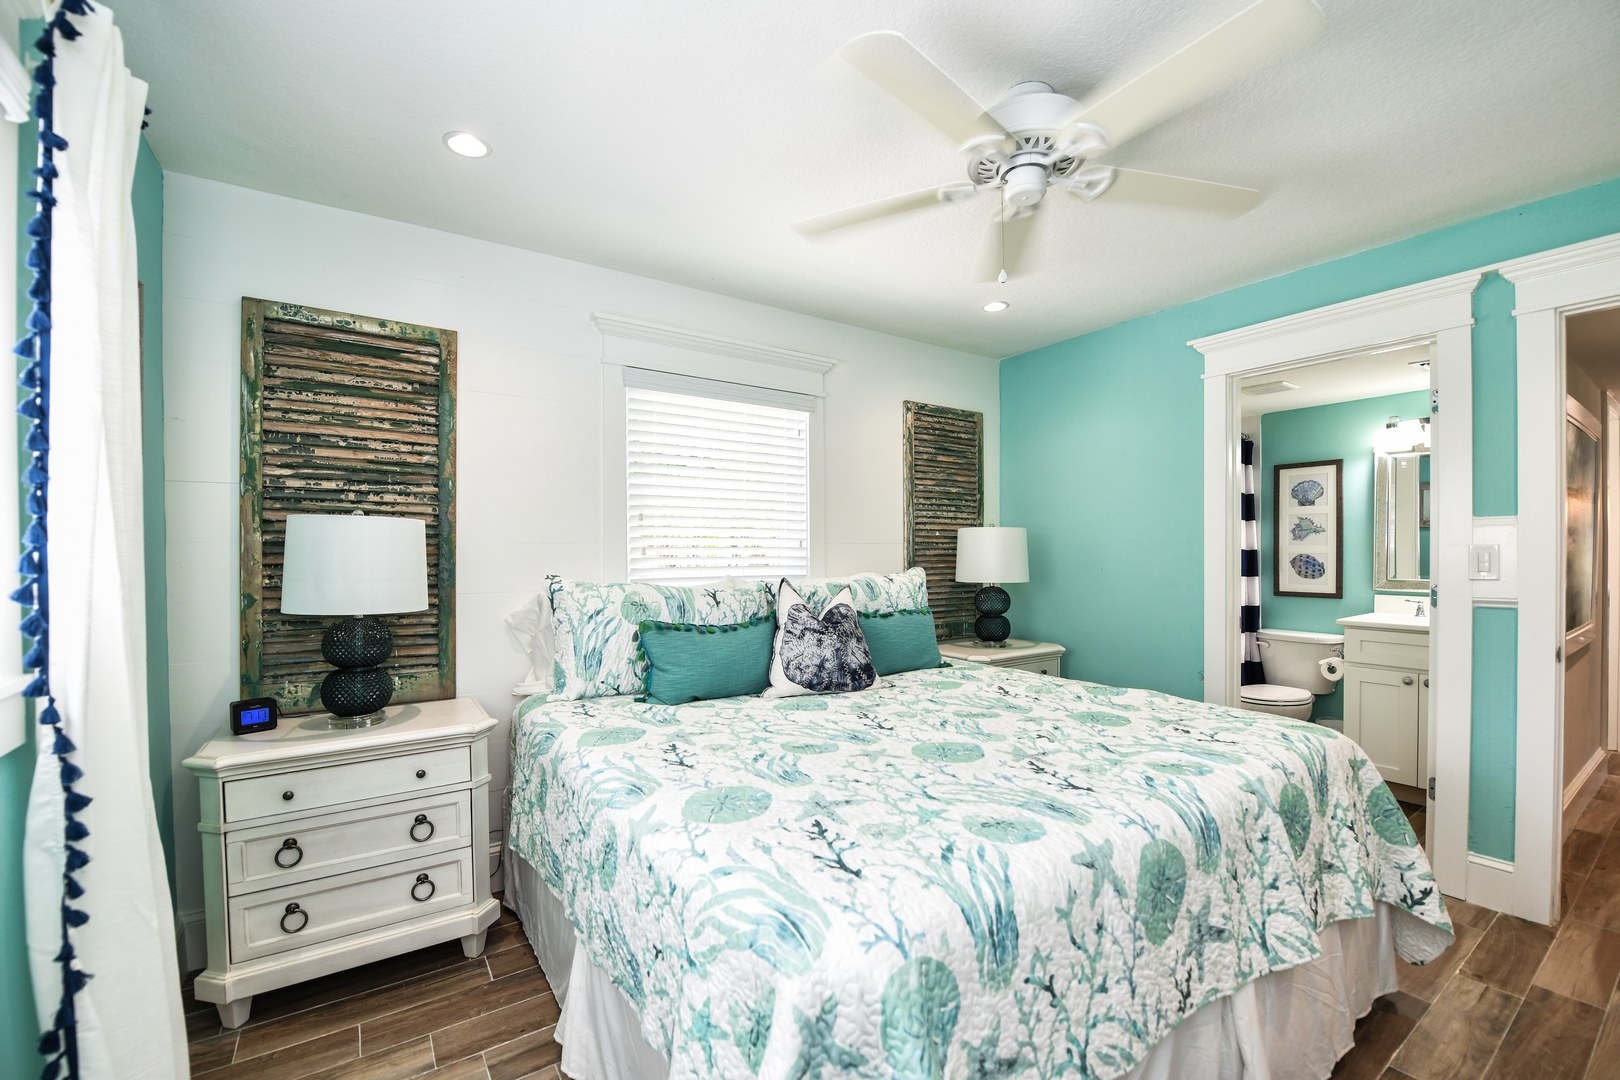 Master Bedroom 2 - King Bed, Ceiling Fan, Closet & Dressers